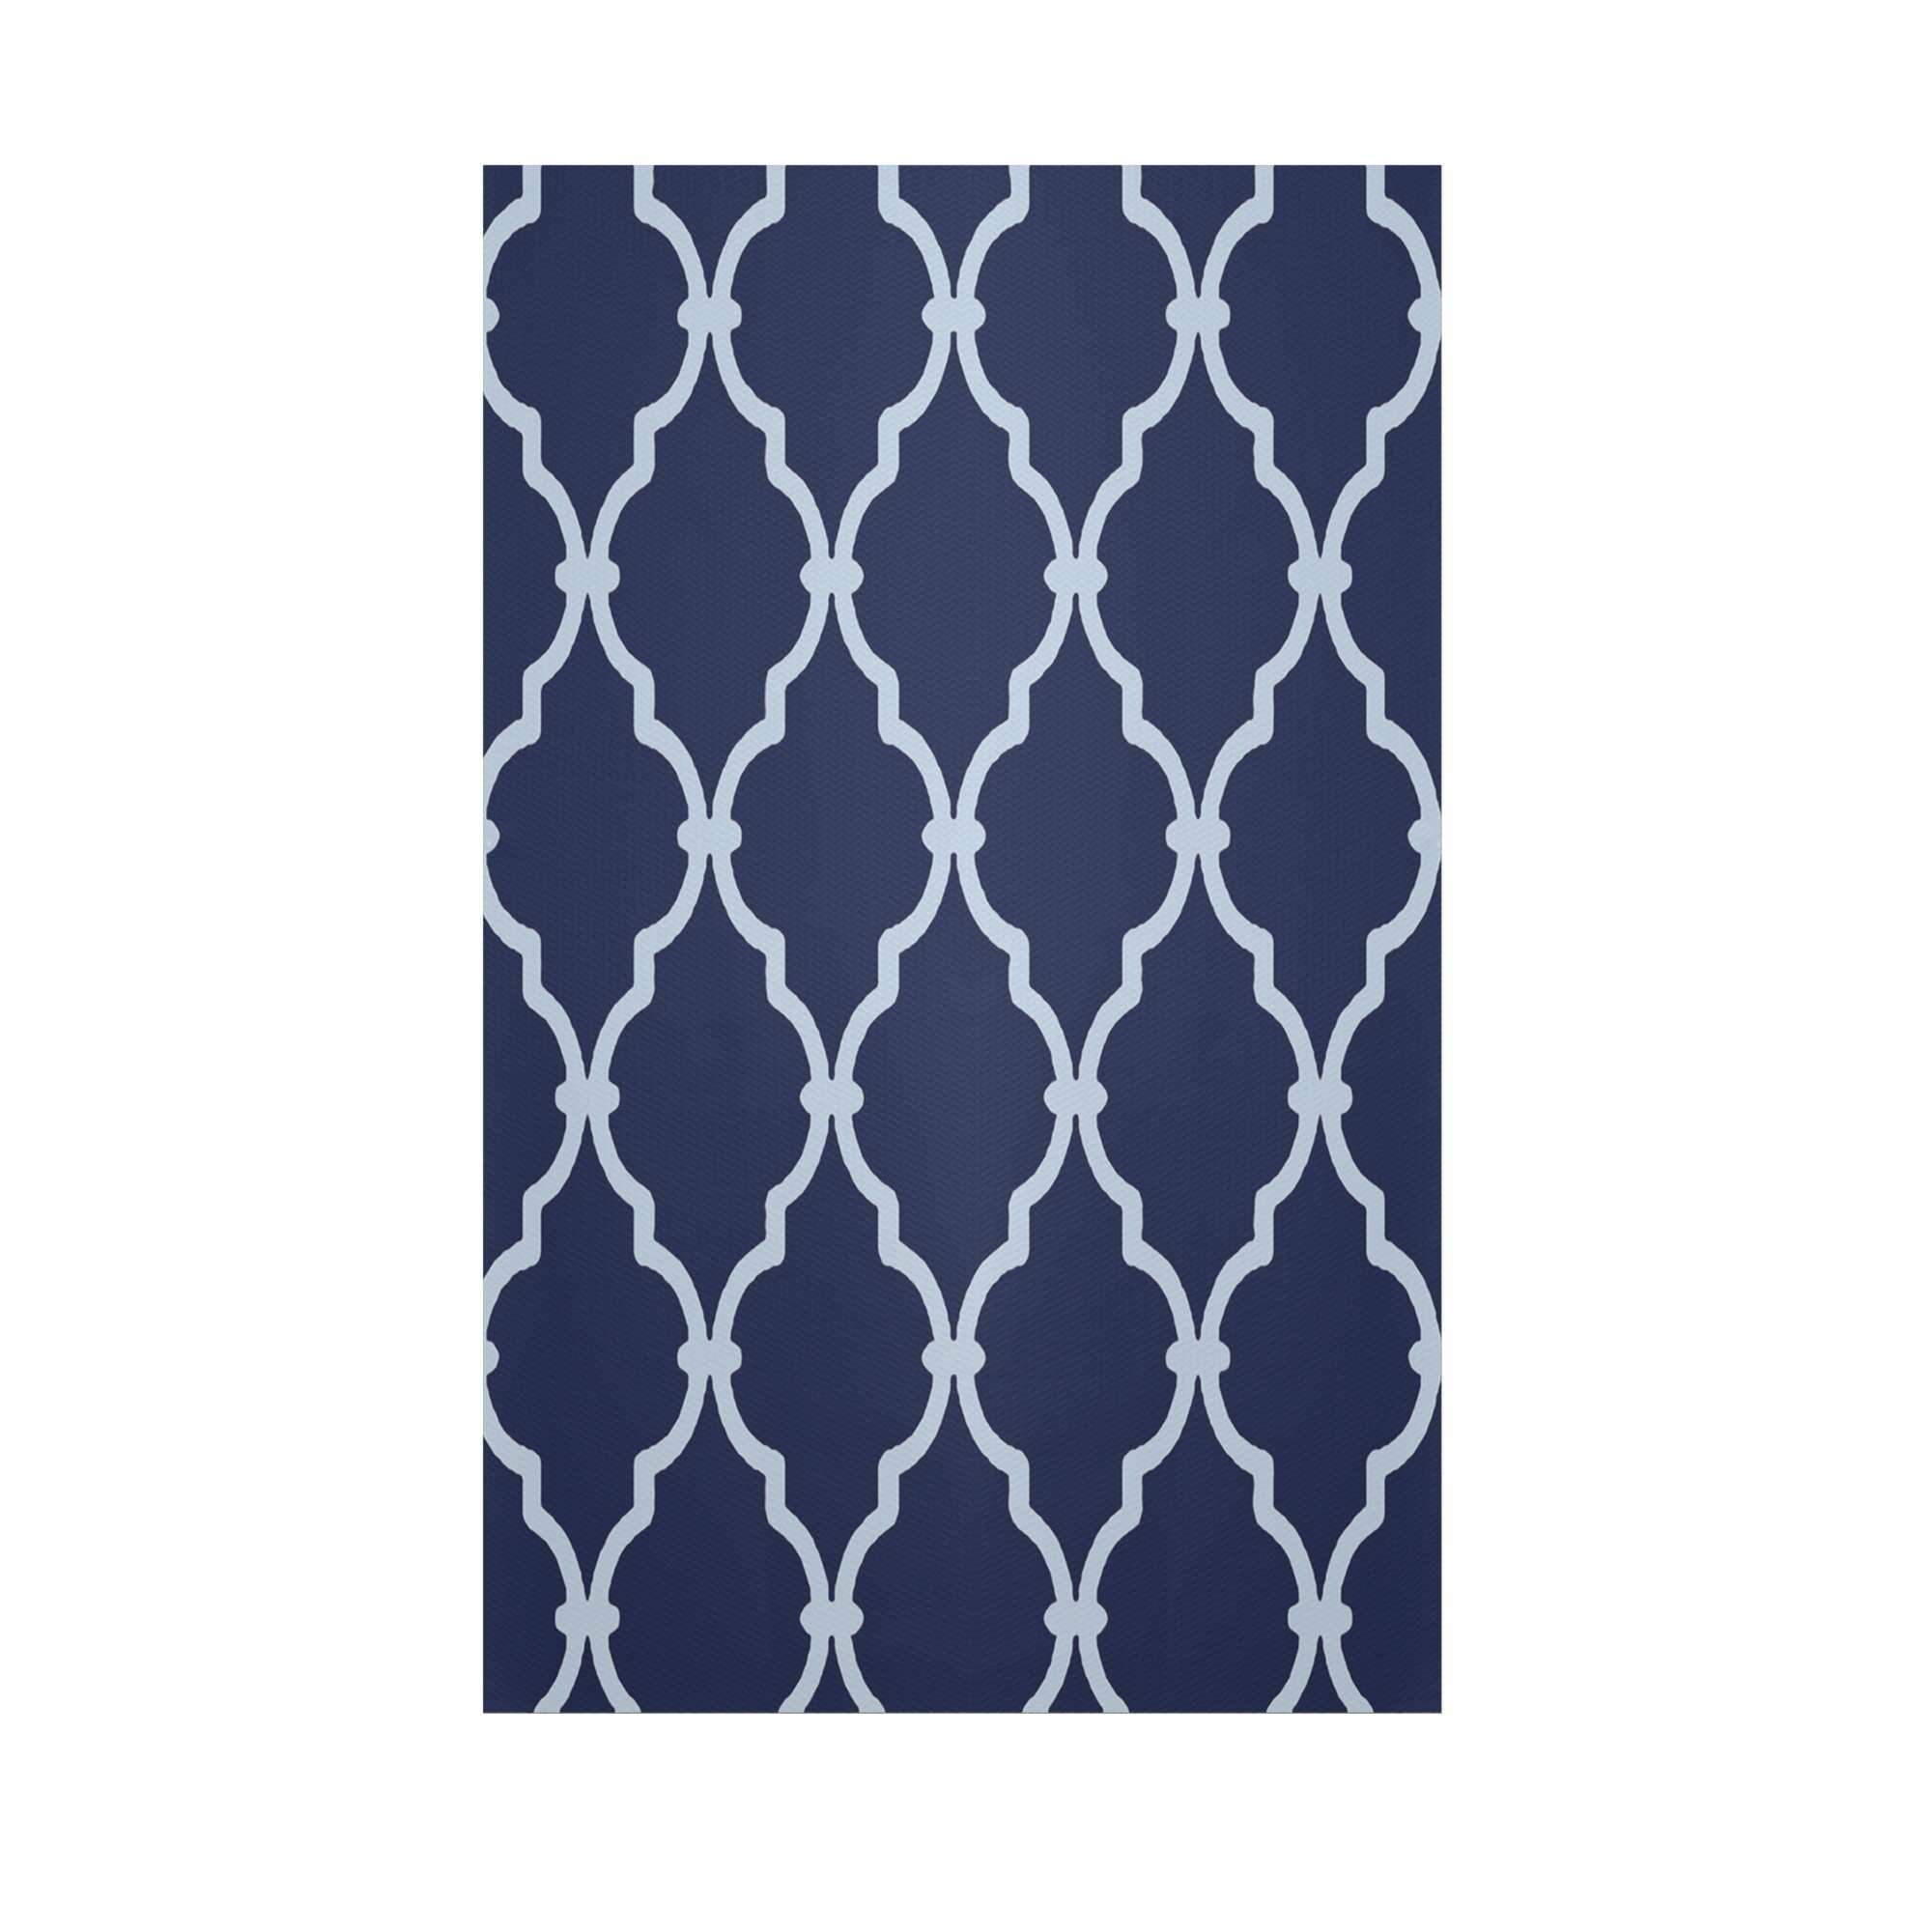 e by design Geometric Navy Blue Indoor Outdoor Area Rug